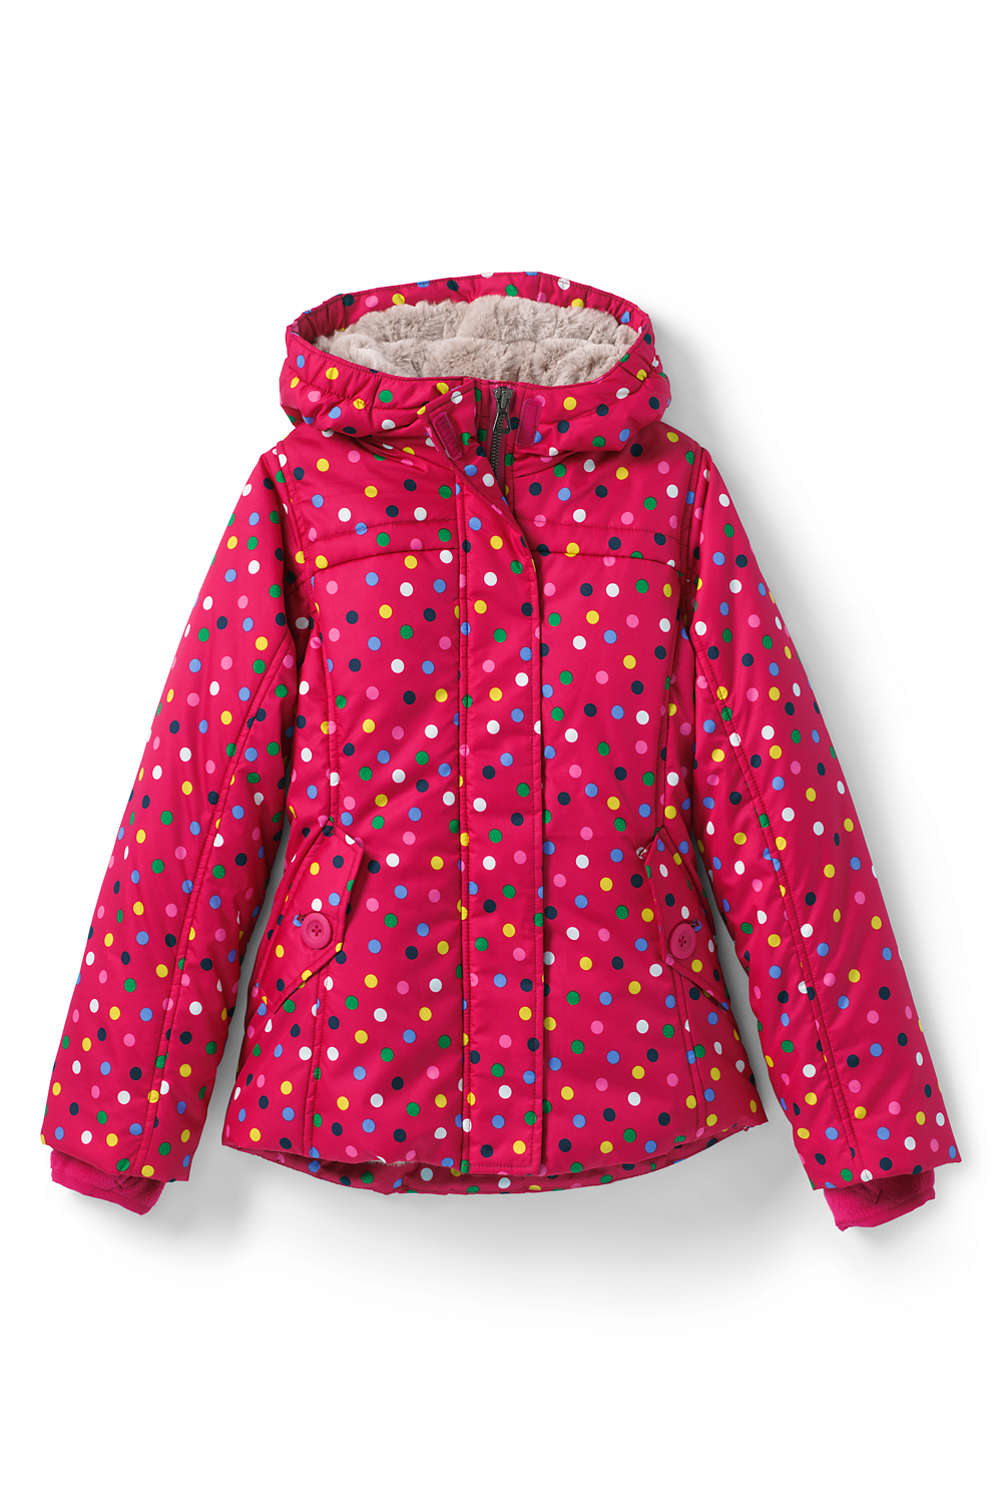 7ceccfe69f7f Girls Fleece Lined Printed Jacket from Lands  End